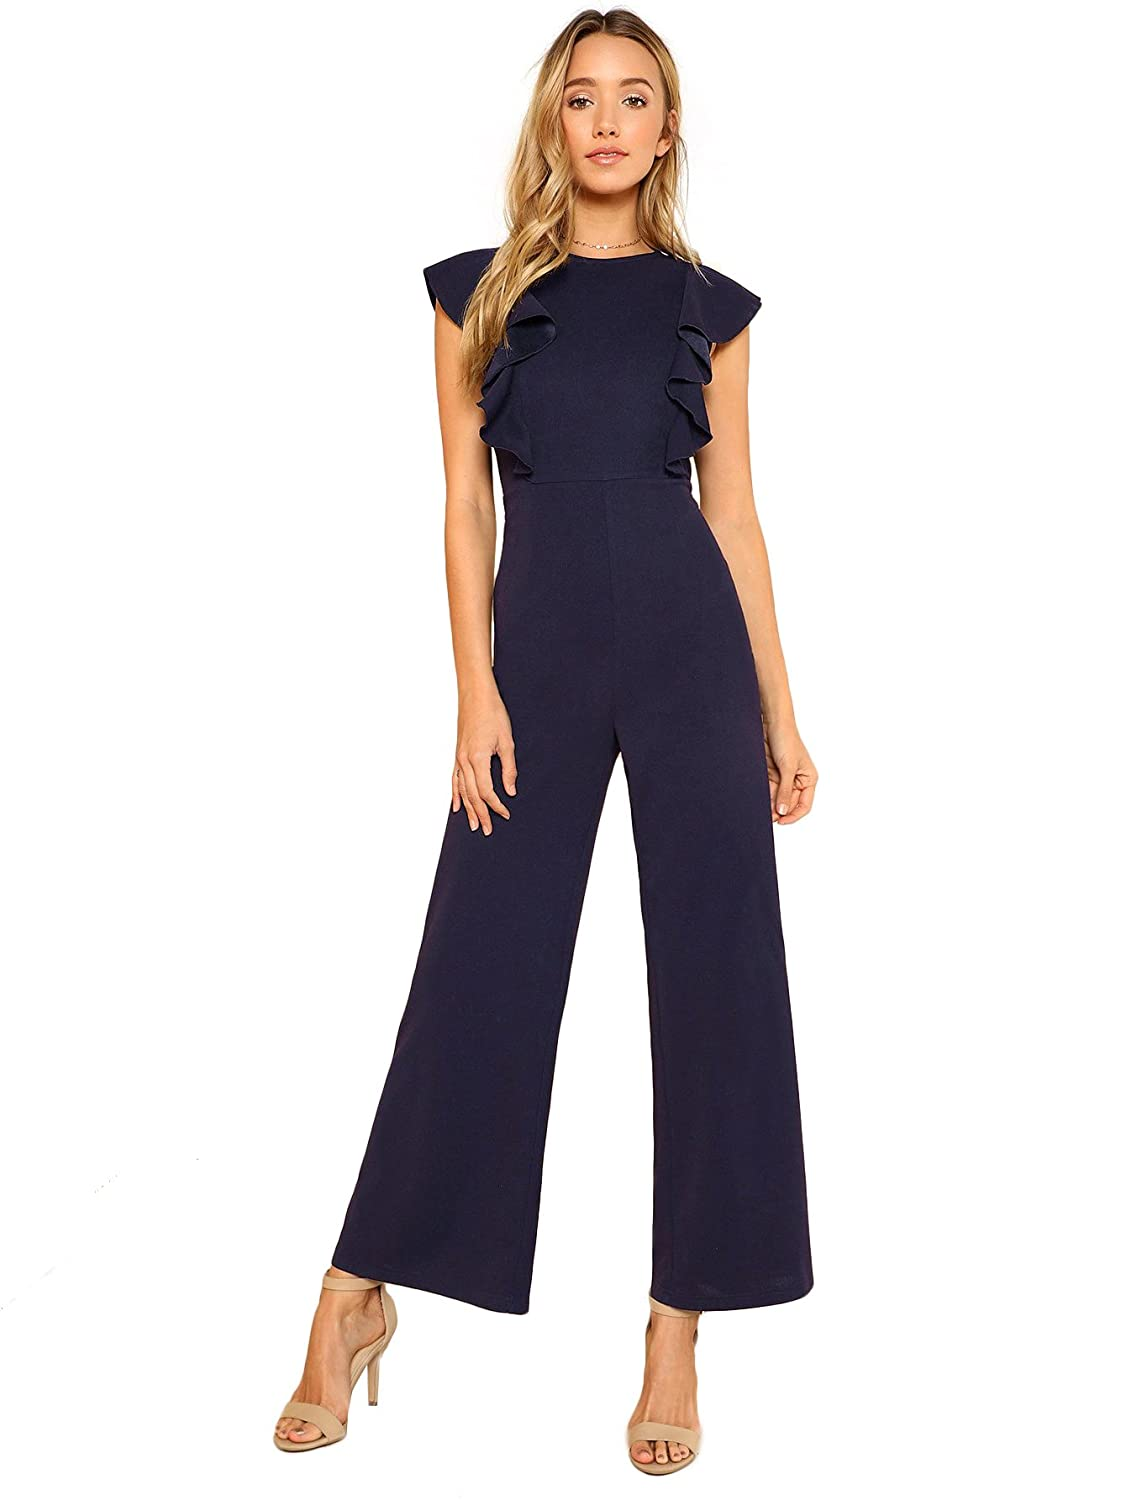 Image result for Romwe Women's Sexy Casual Sleeveless Ruffle Trim Wide Leg High Waist Long Jumpsuit